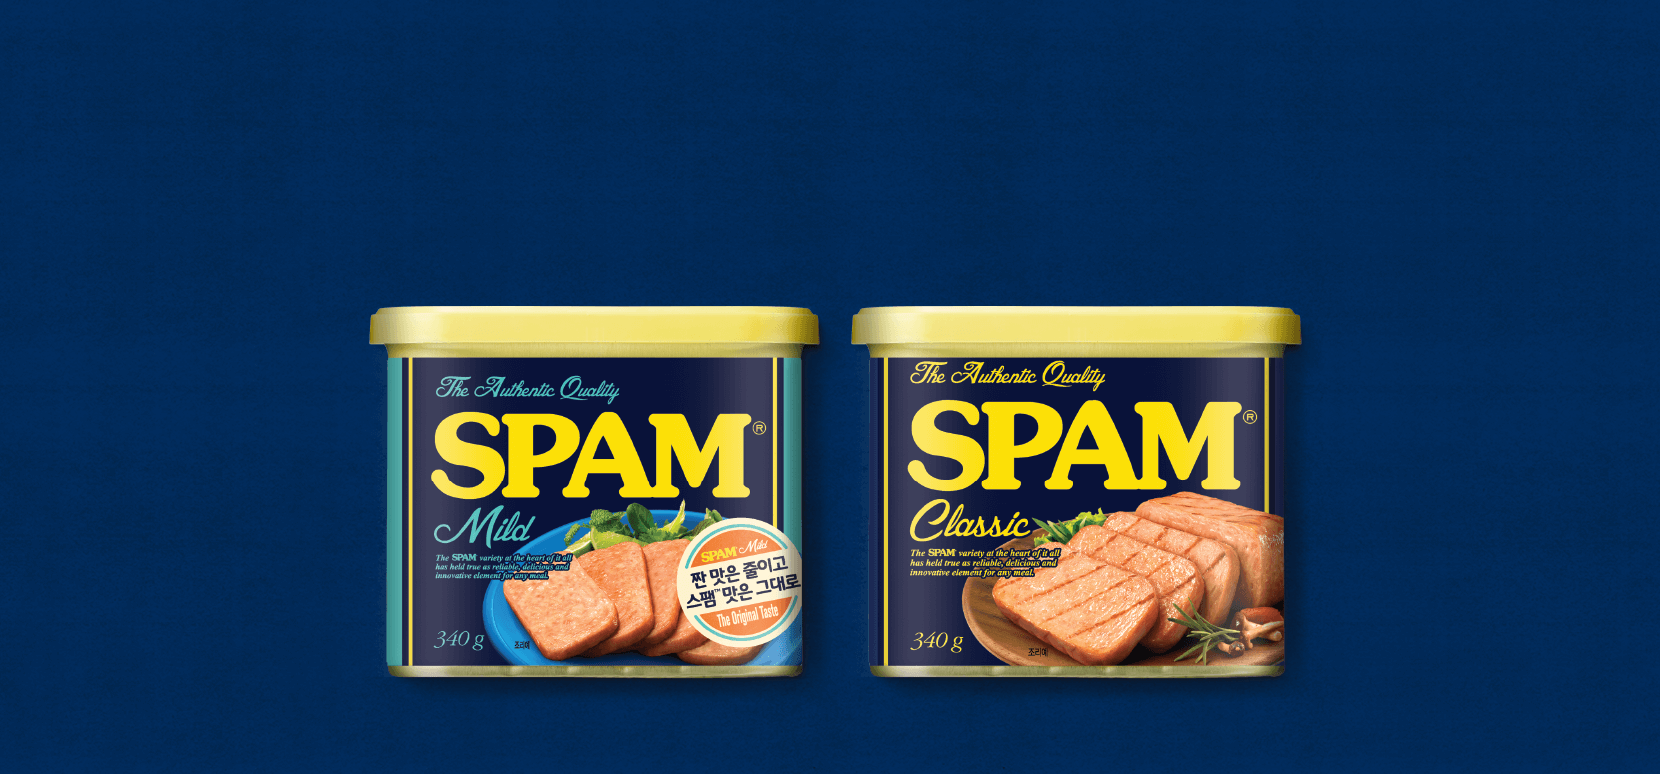 SPAM®is genuine, of course